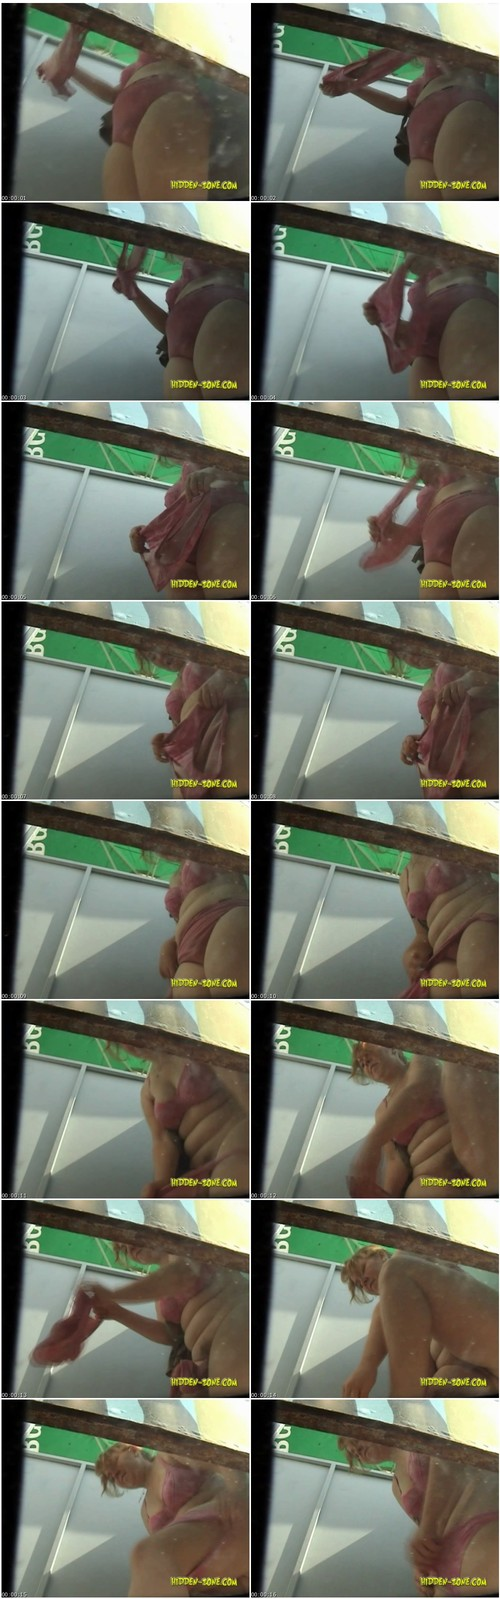 hiddencam496_thumb_m.jpg